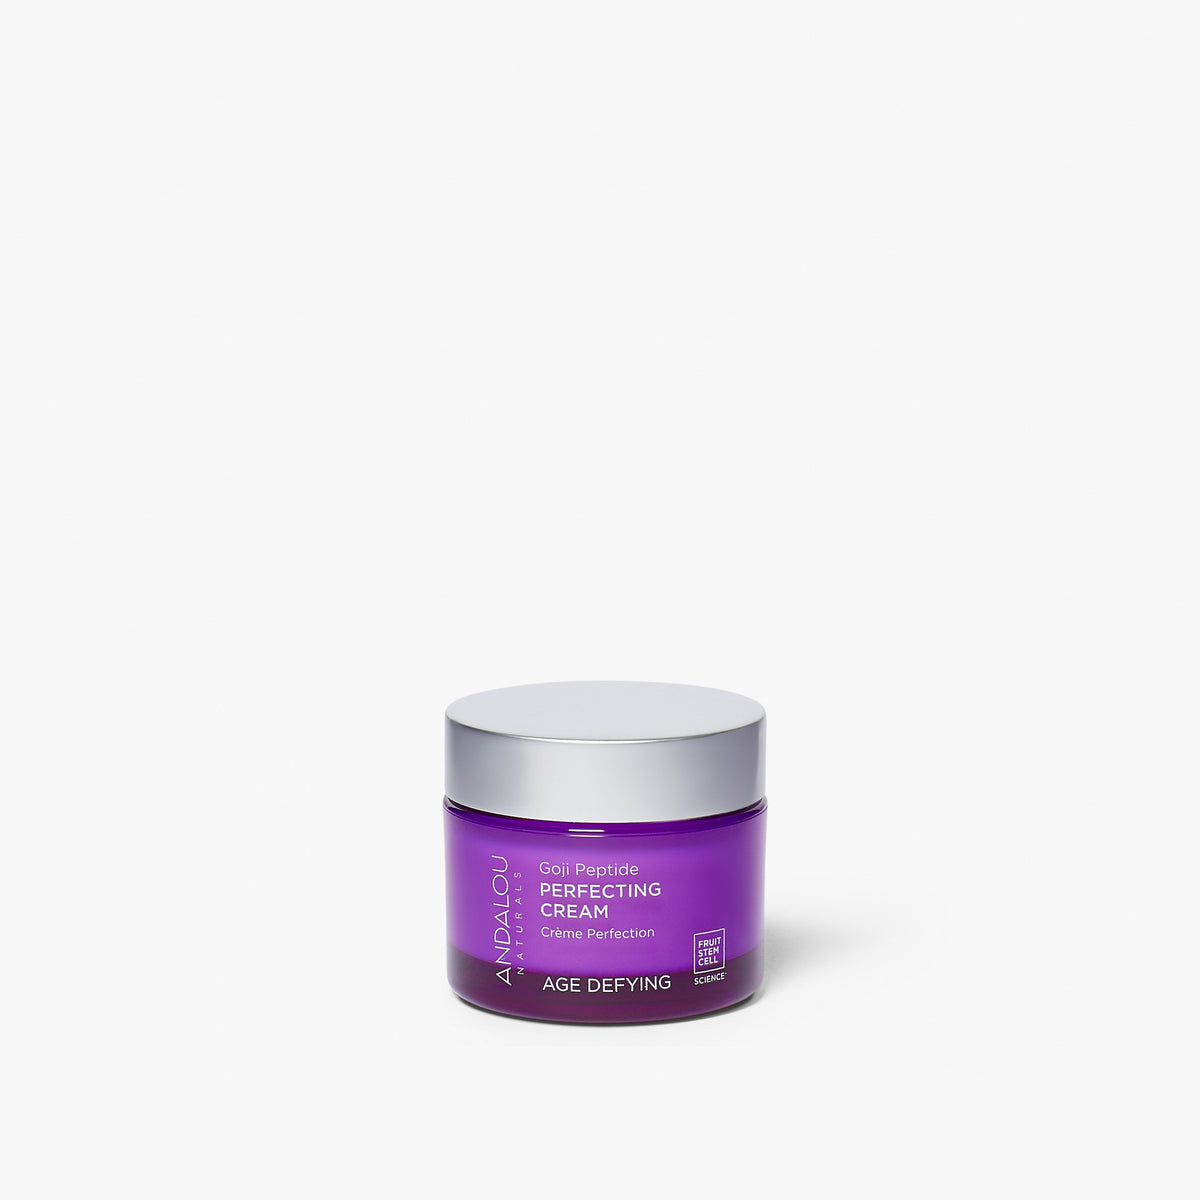 Age Defying Goji Peptide Perfecting Cream - Andalou Naturals US